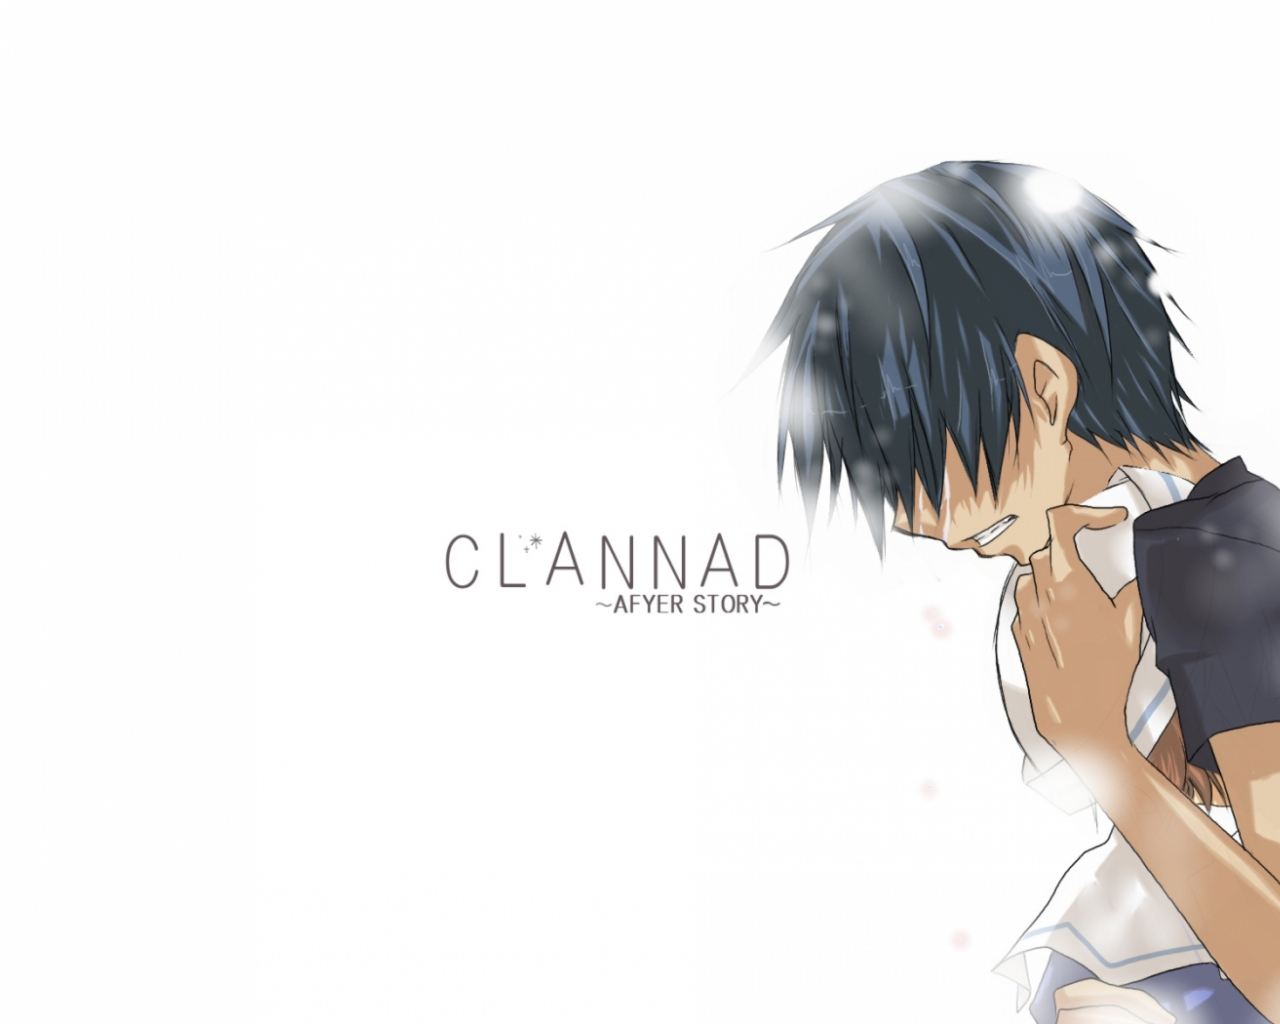 Free Download Download Clannad After Story Tomoya Ushio 1680x1050 For Your Desktop Mobile Tablet Explore 76 Clannad After Story Wallpaper Dango Wallpaper